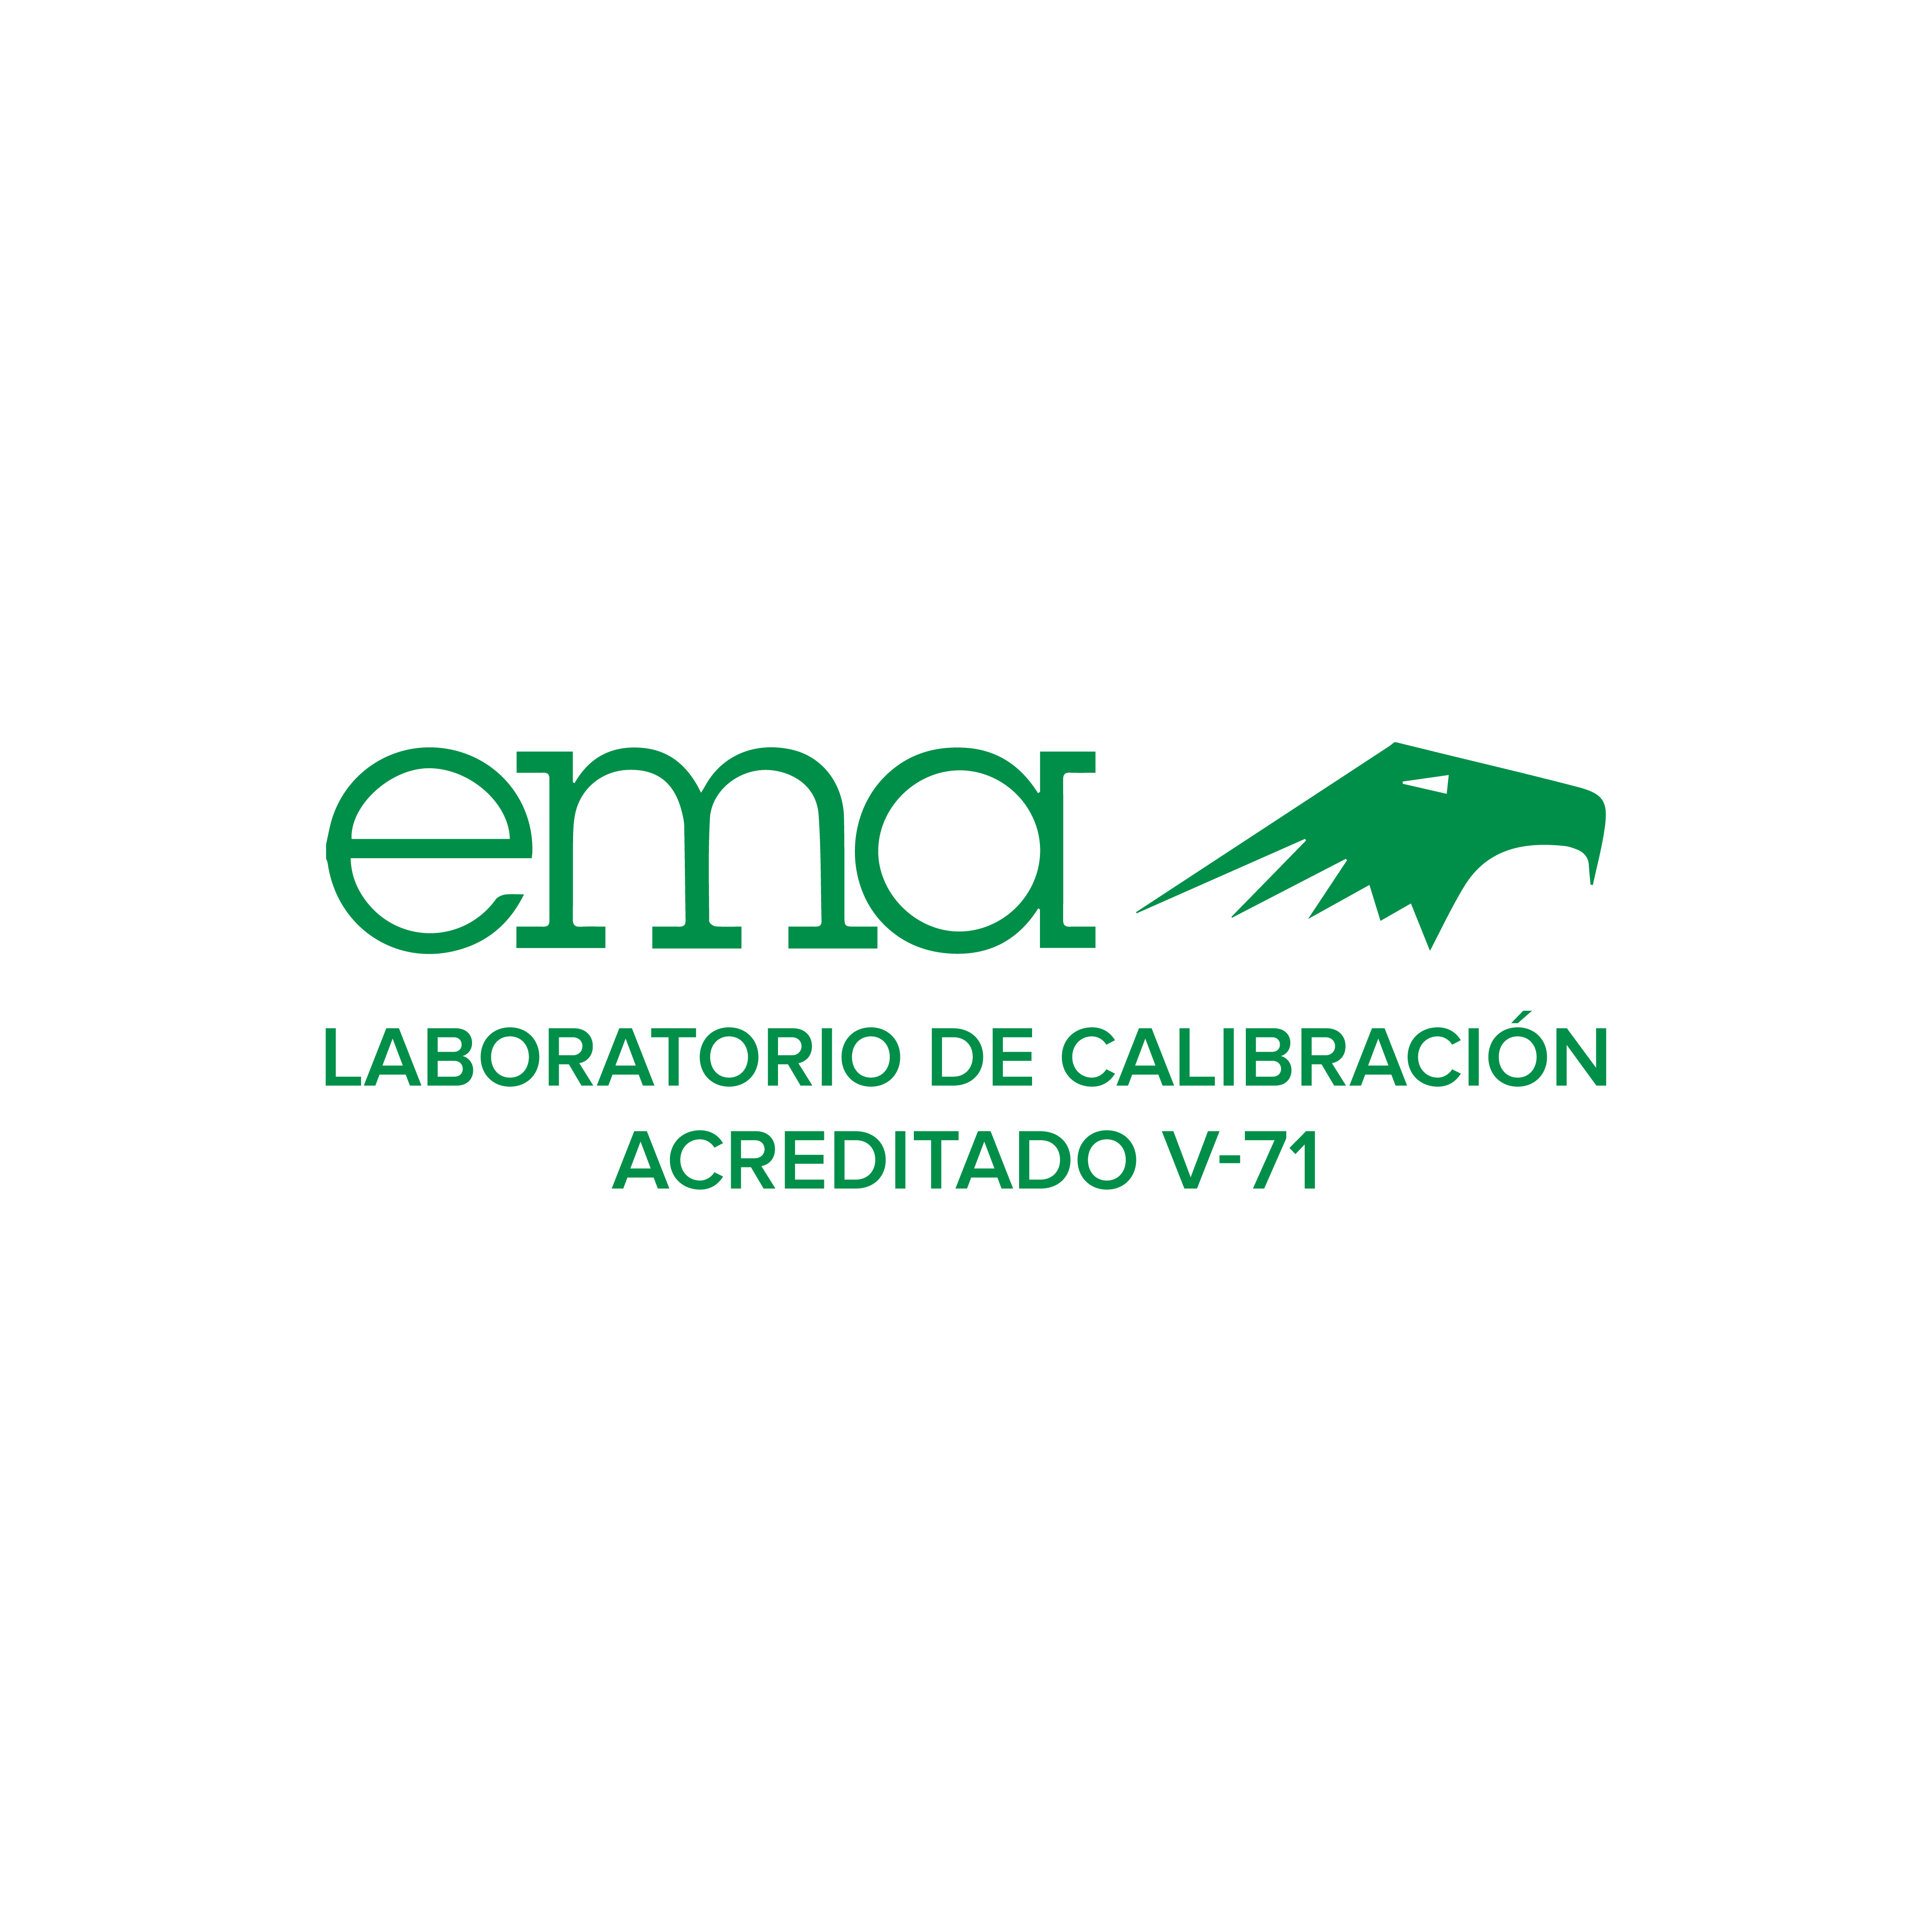 ¡CTR Scientific Certificado EMA V-71!